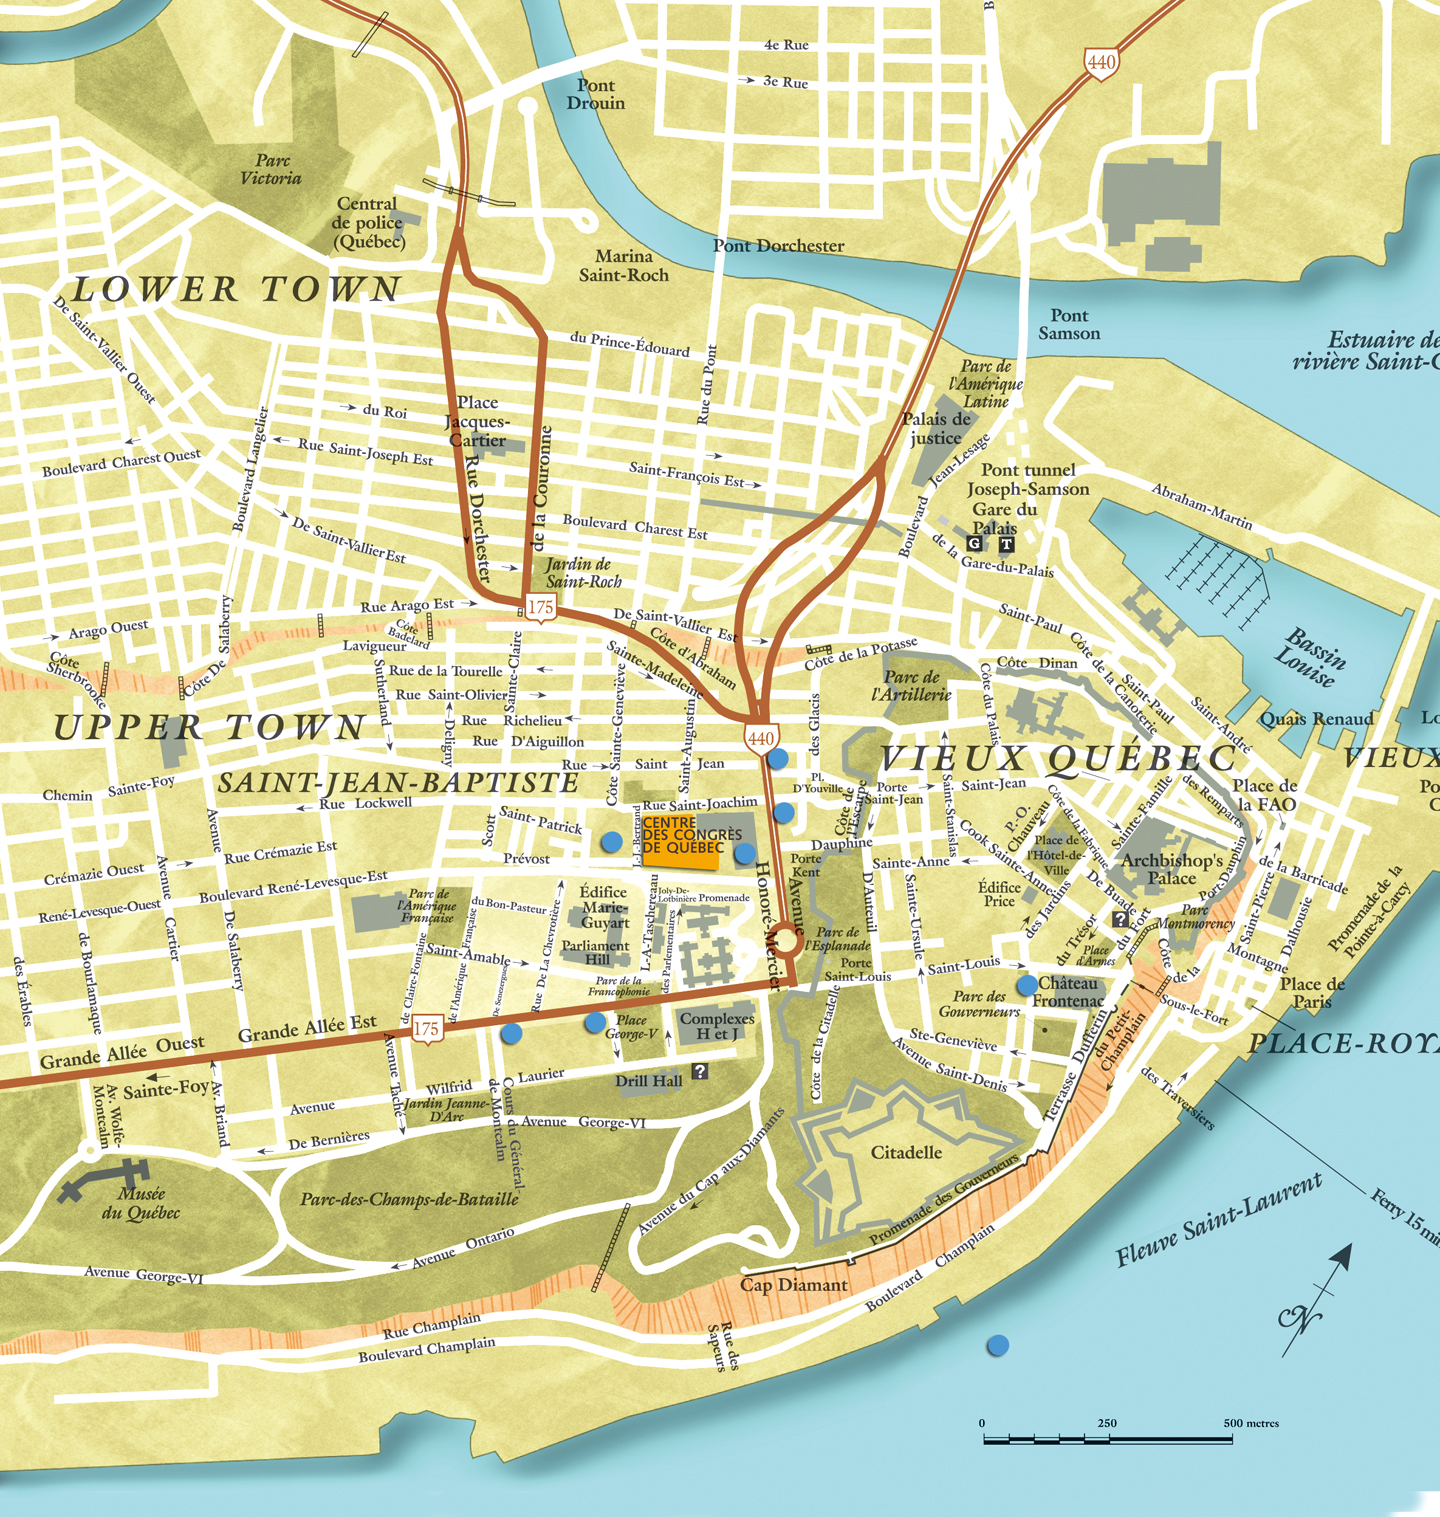 5th Annual Canadian Neuroscience Meeting – Tourist Map Of Quebec City